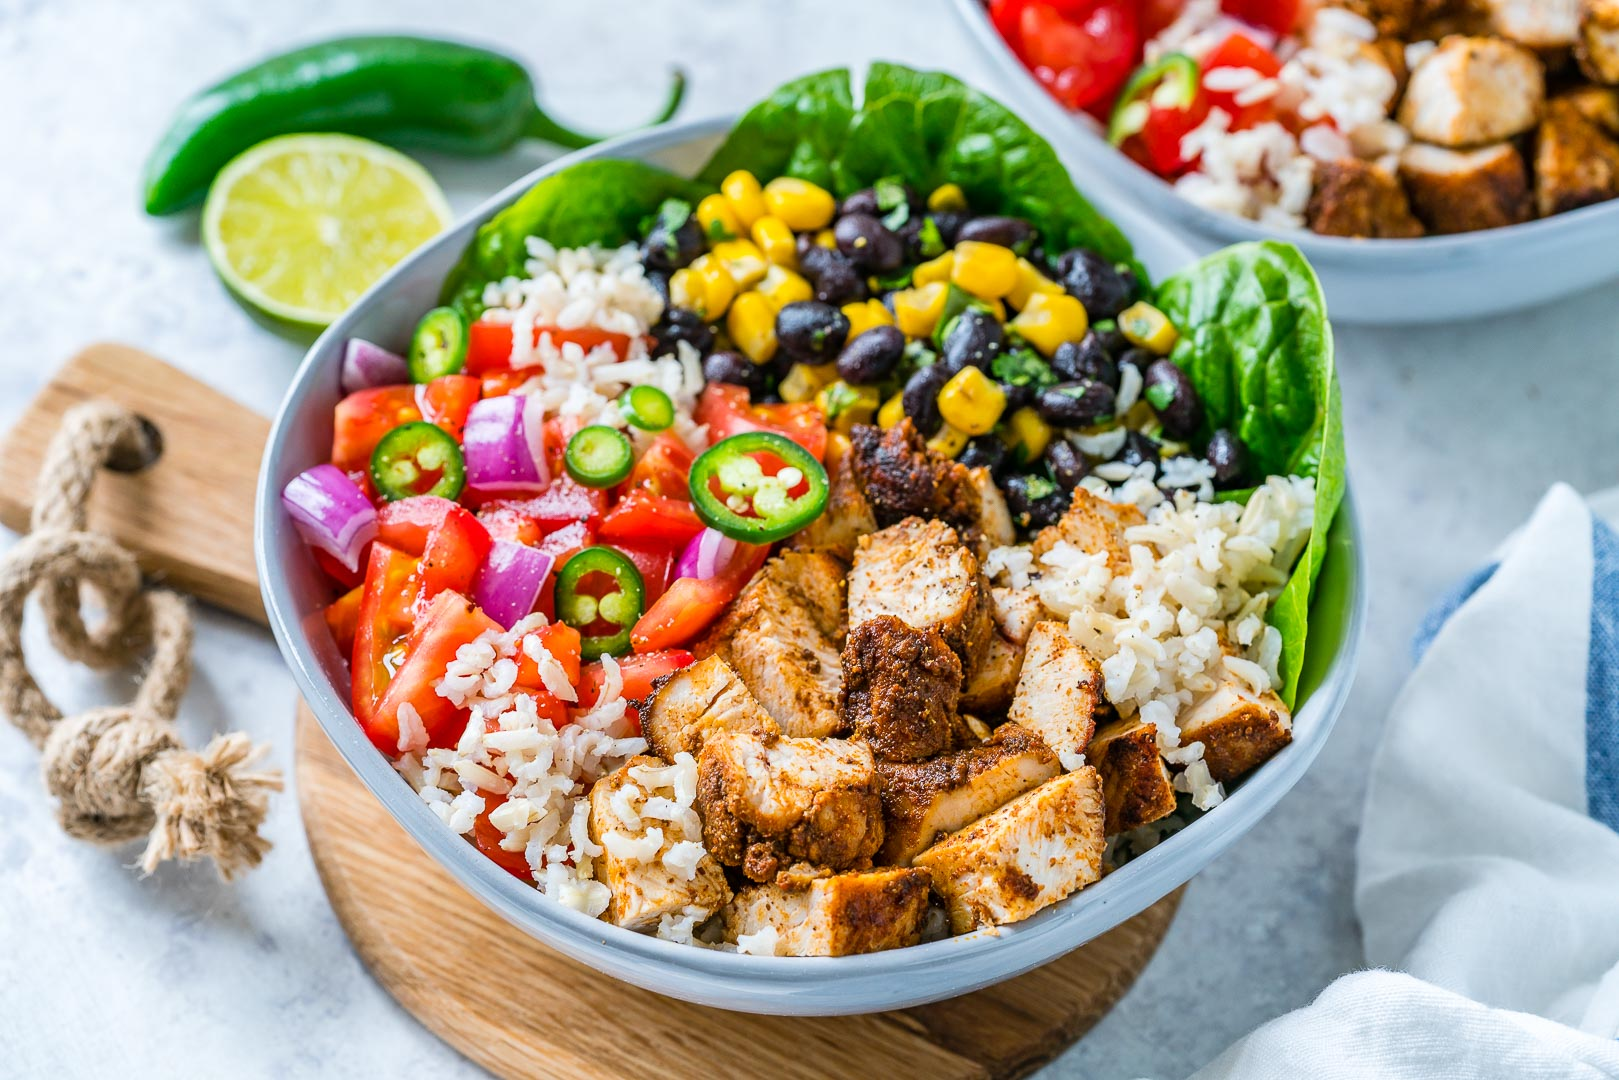 BBQ Chicken Burrito Bowls For Clean Eating Meal Prep